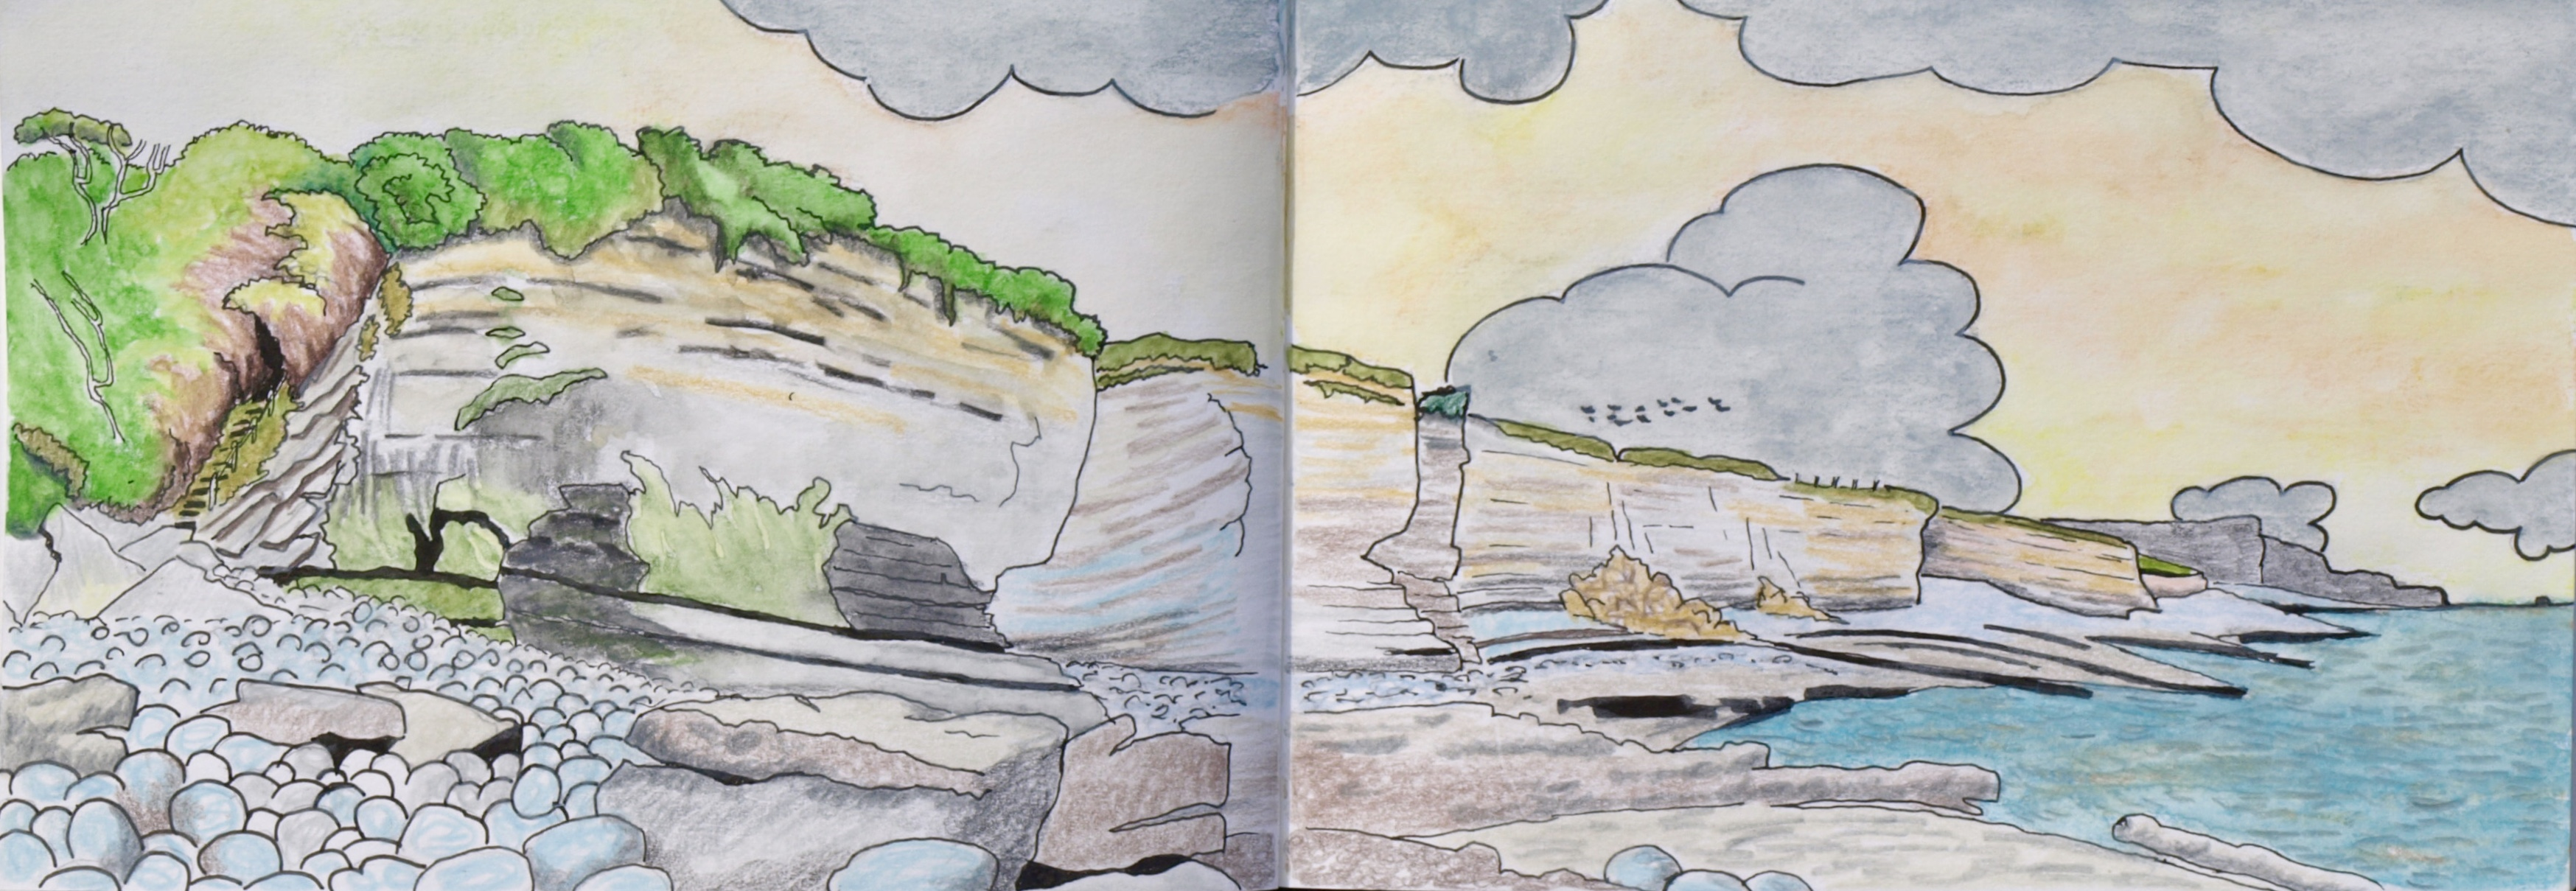 Sketch from Stradling Well, Atlantic College near Llantwit Major